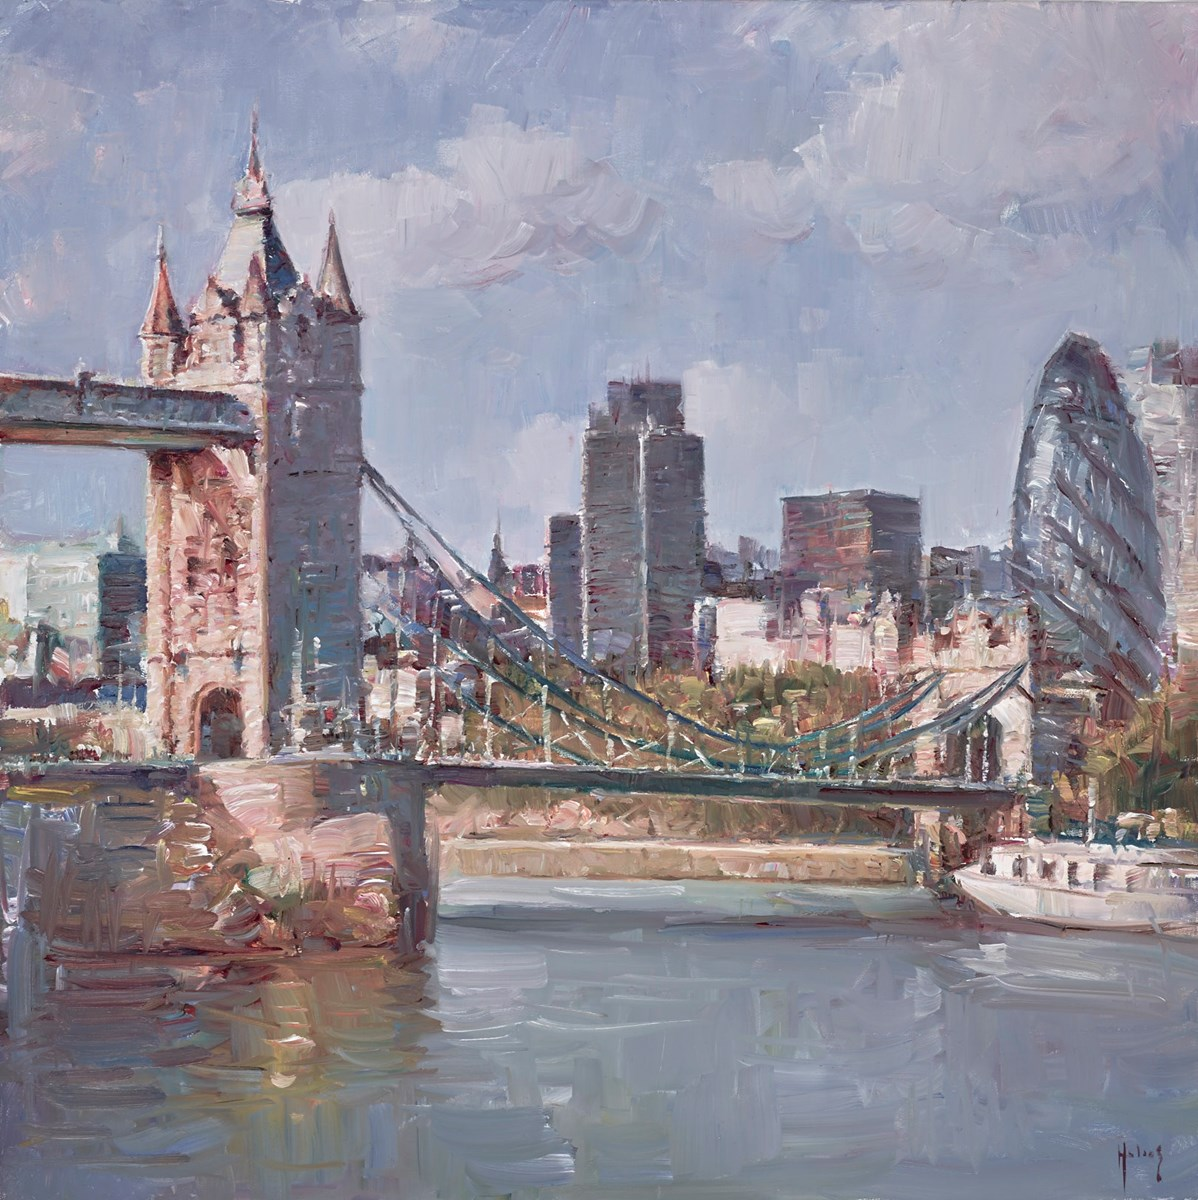 London City Views II by helios -  sized 24x24 inches. Available from Whitewall Galleries